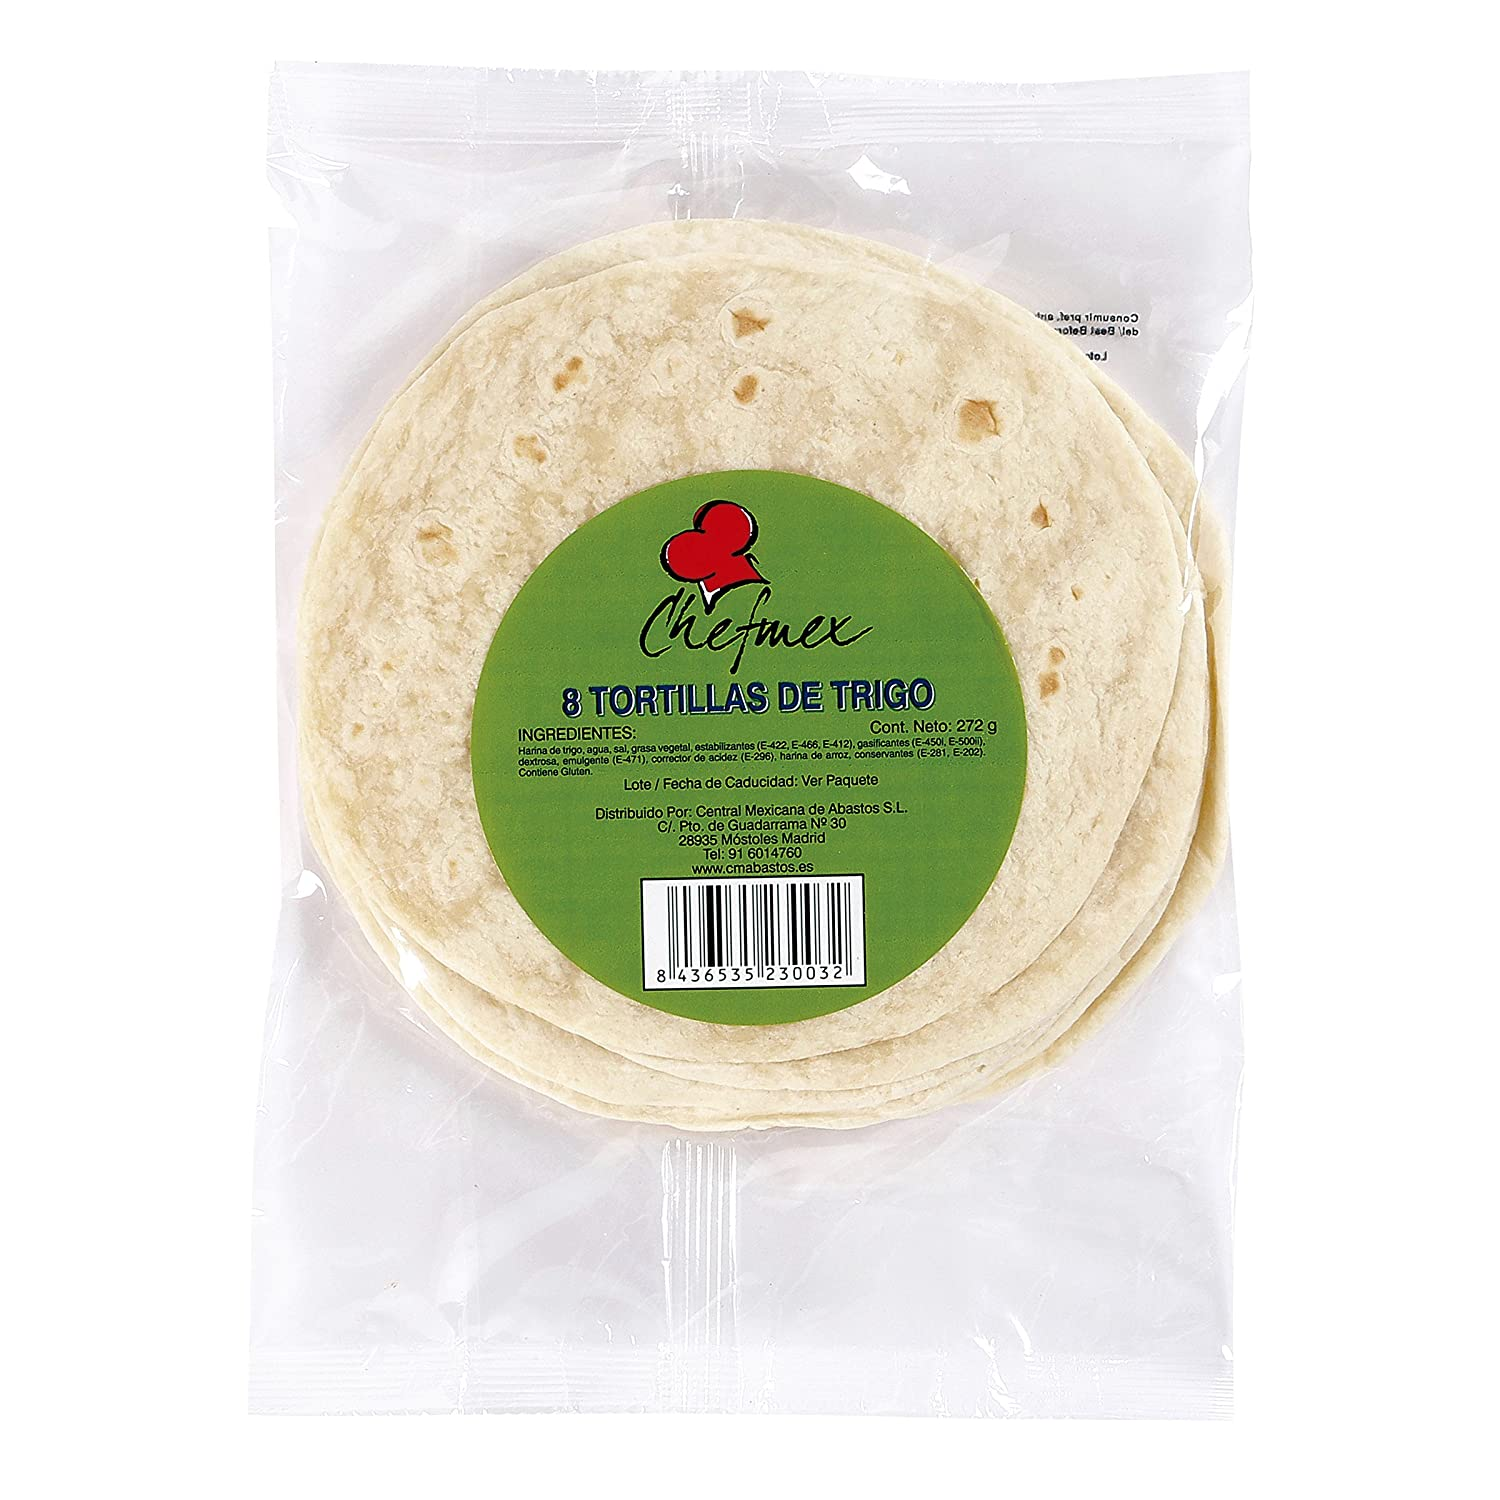 LA COSTEÑA tortilla de trigo bolsa 272 gr: Amazon.es ...